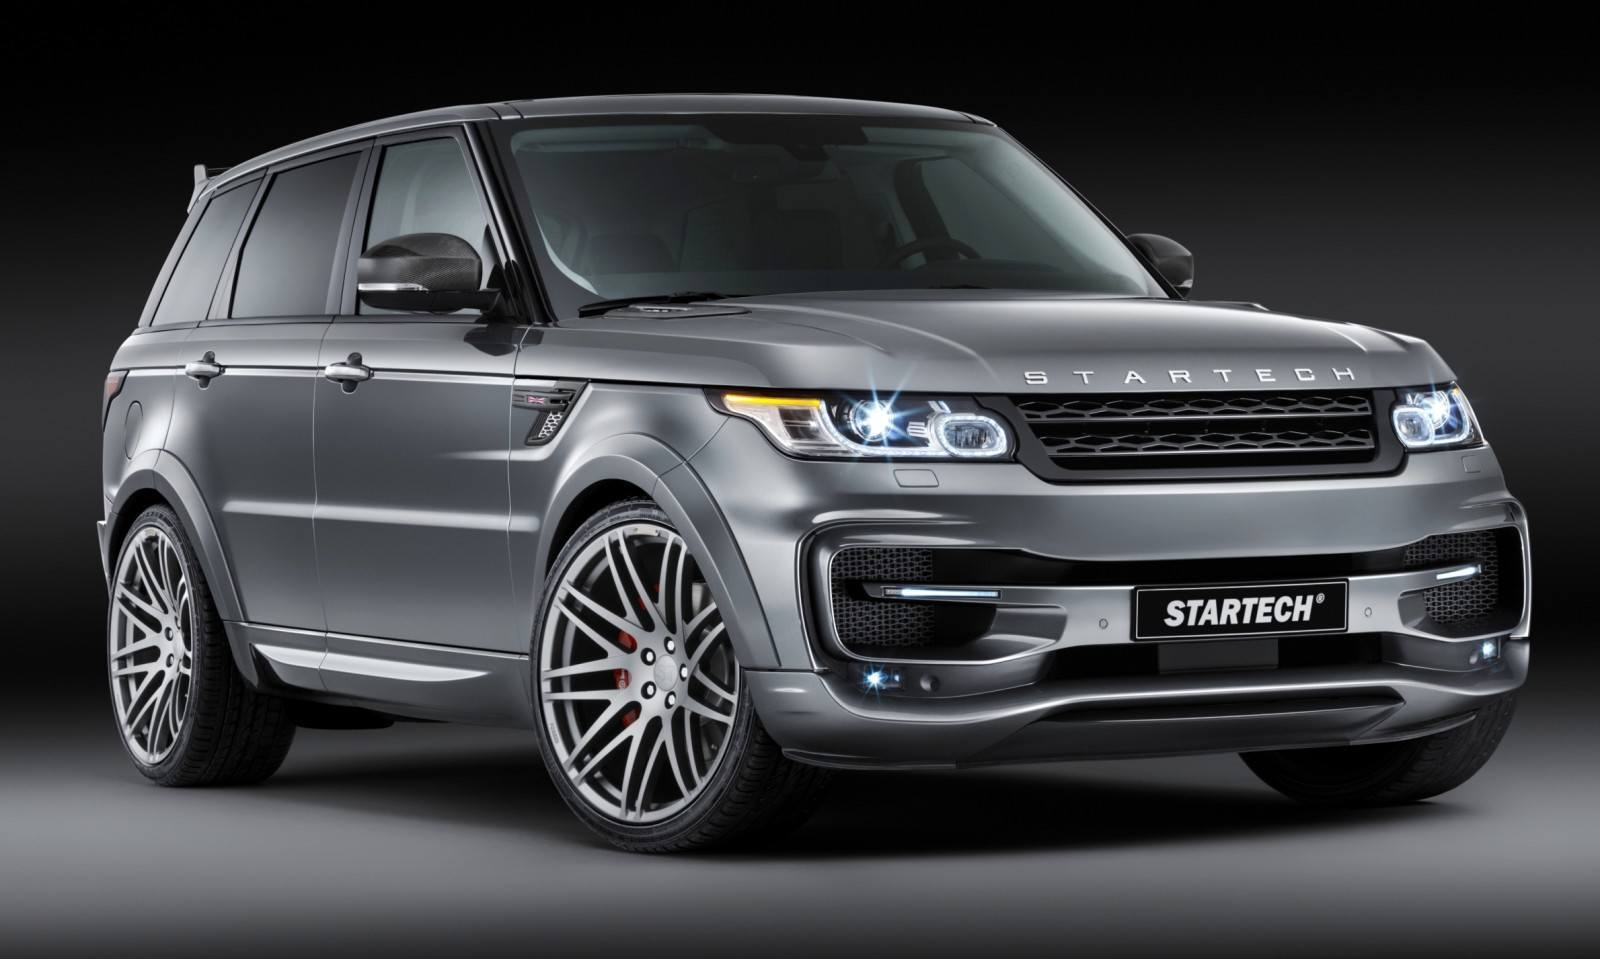 2014 Range Rover Sport STARTECH Widebody on 23-Inch Wheels Looks Amazing 1